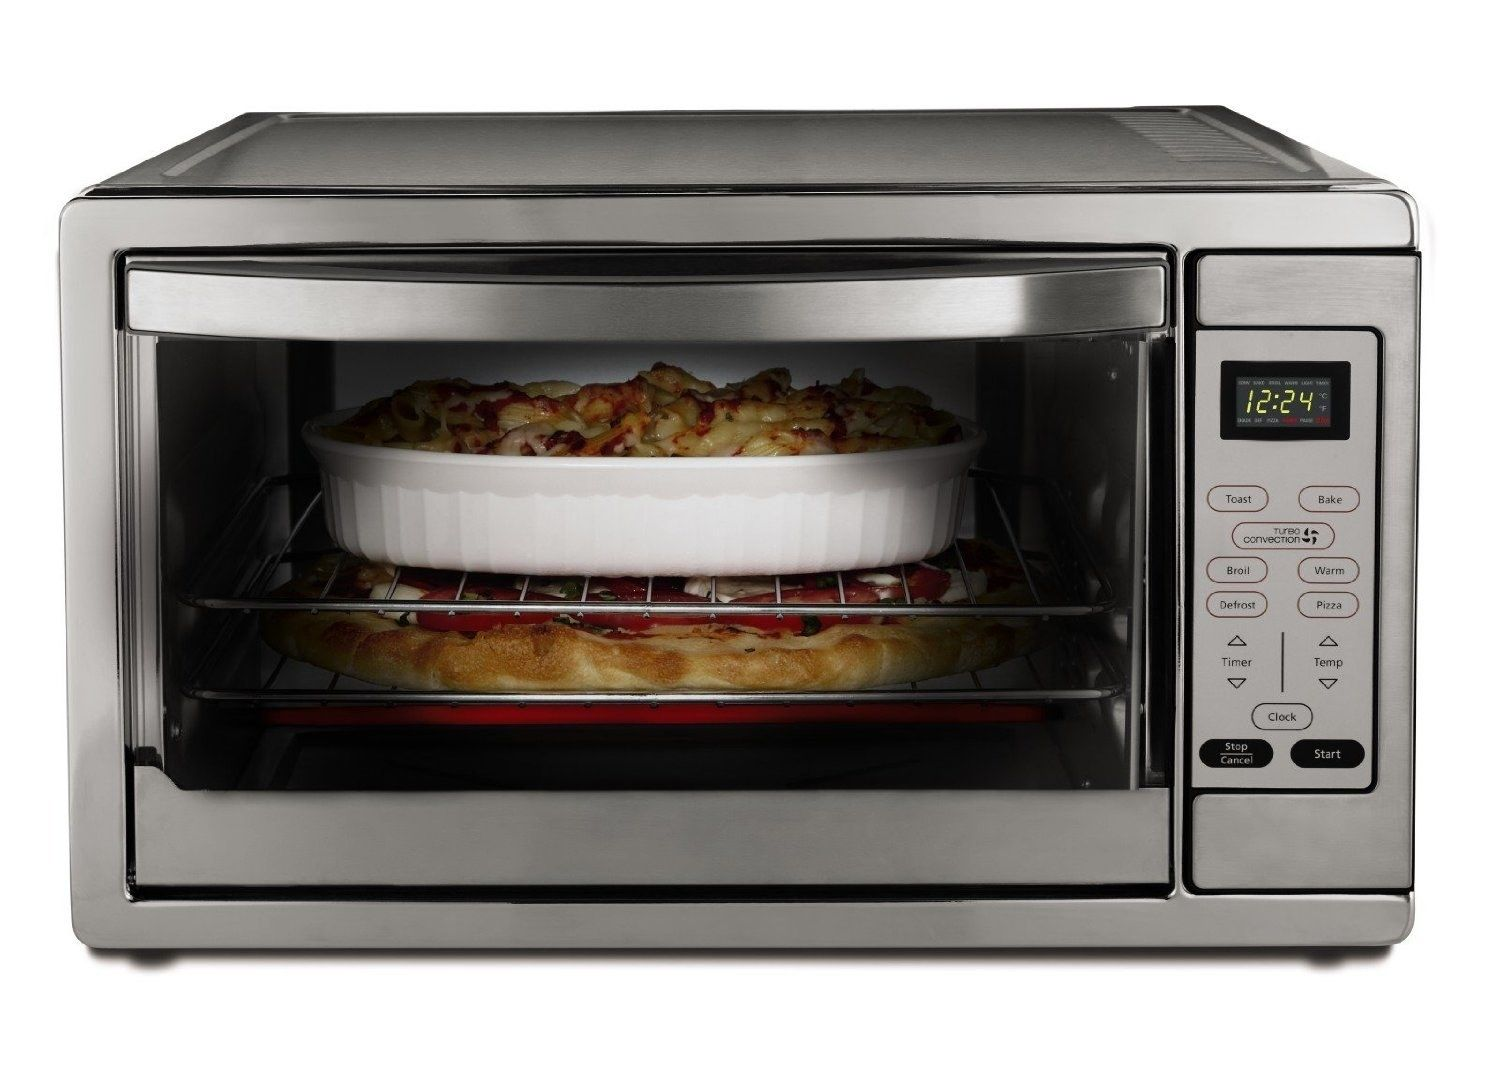 A Large Countertop Oven That Uses Convection Technology Cooking